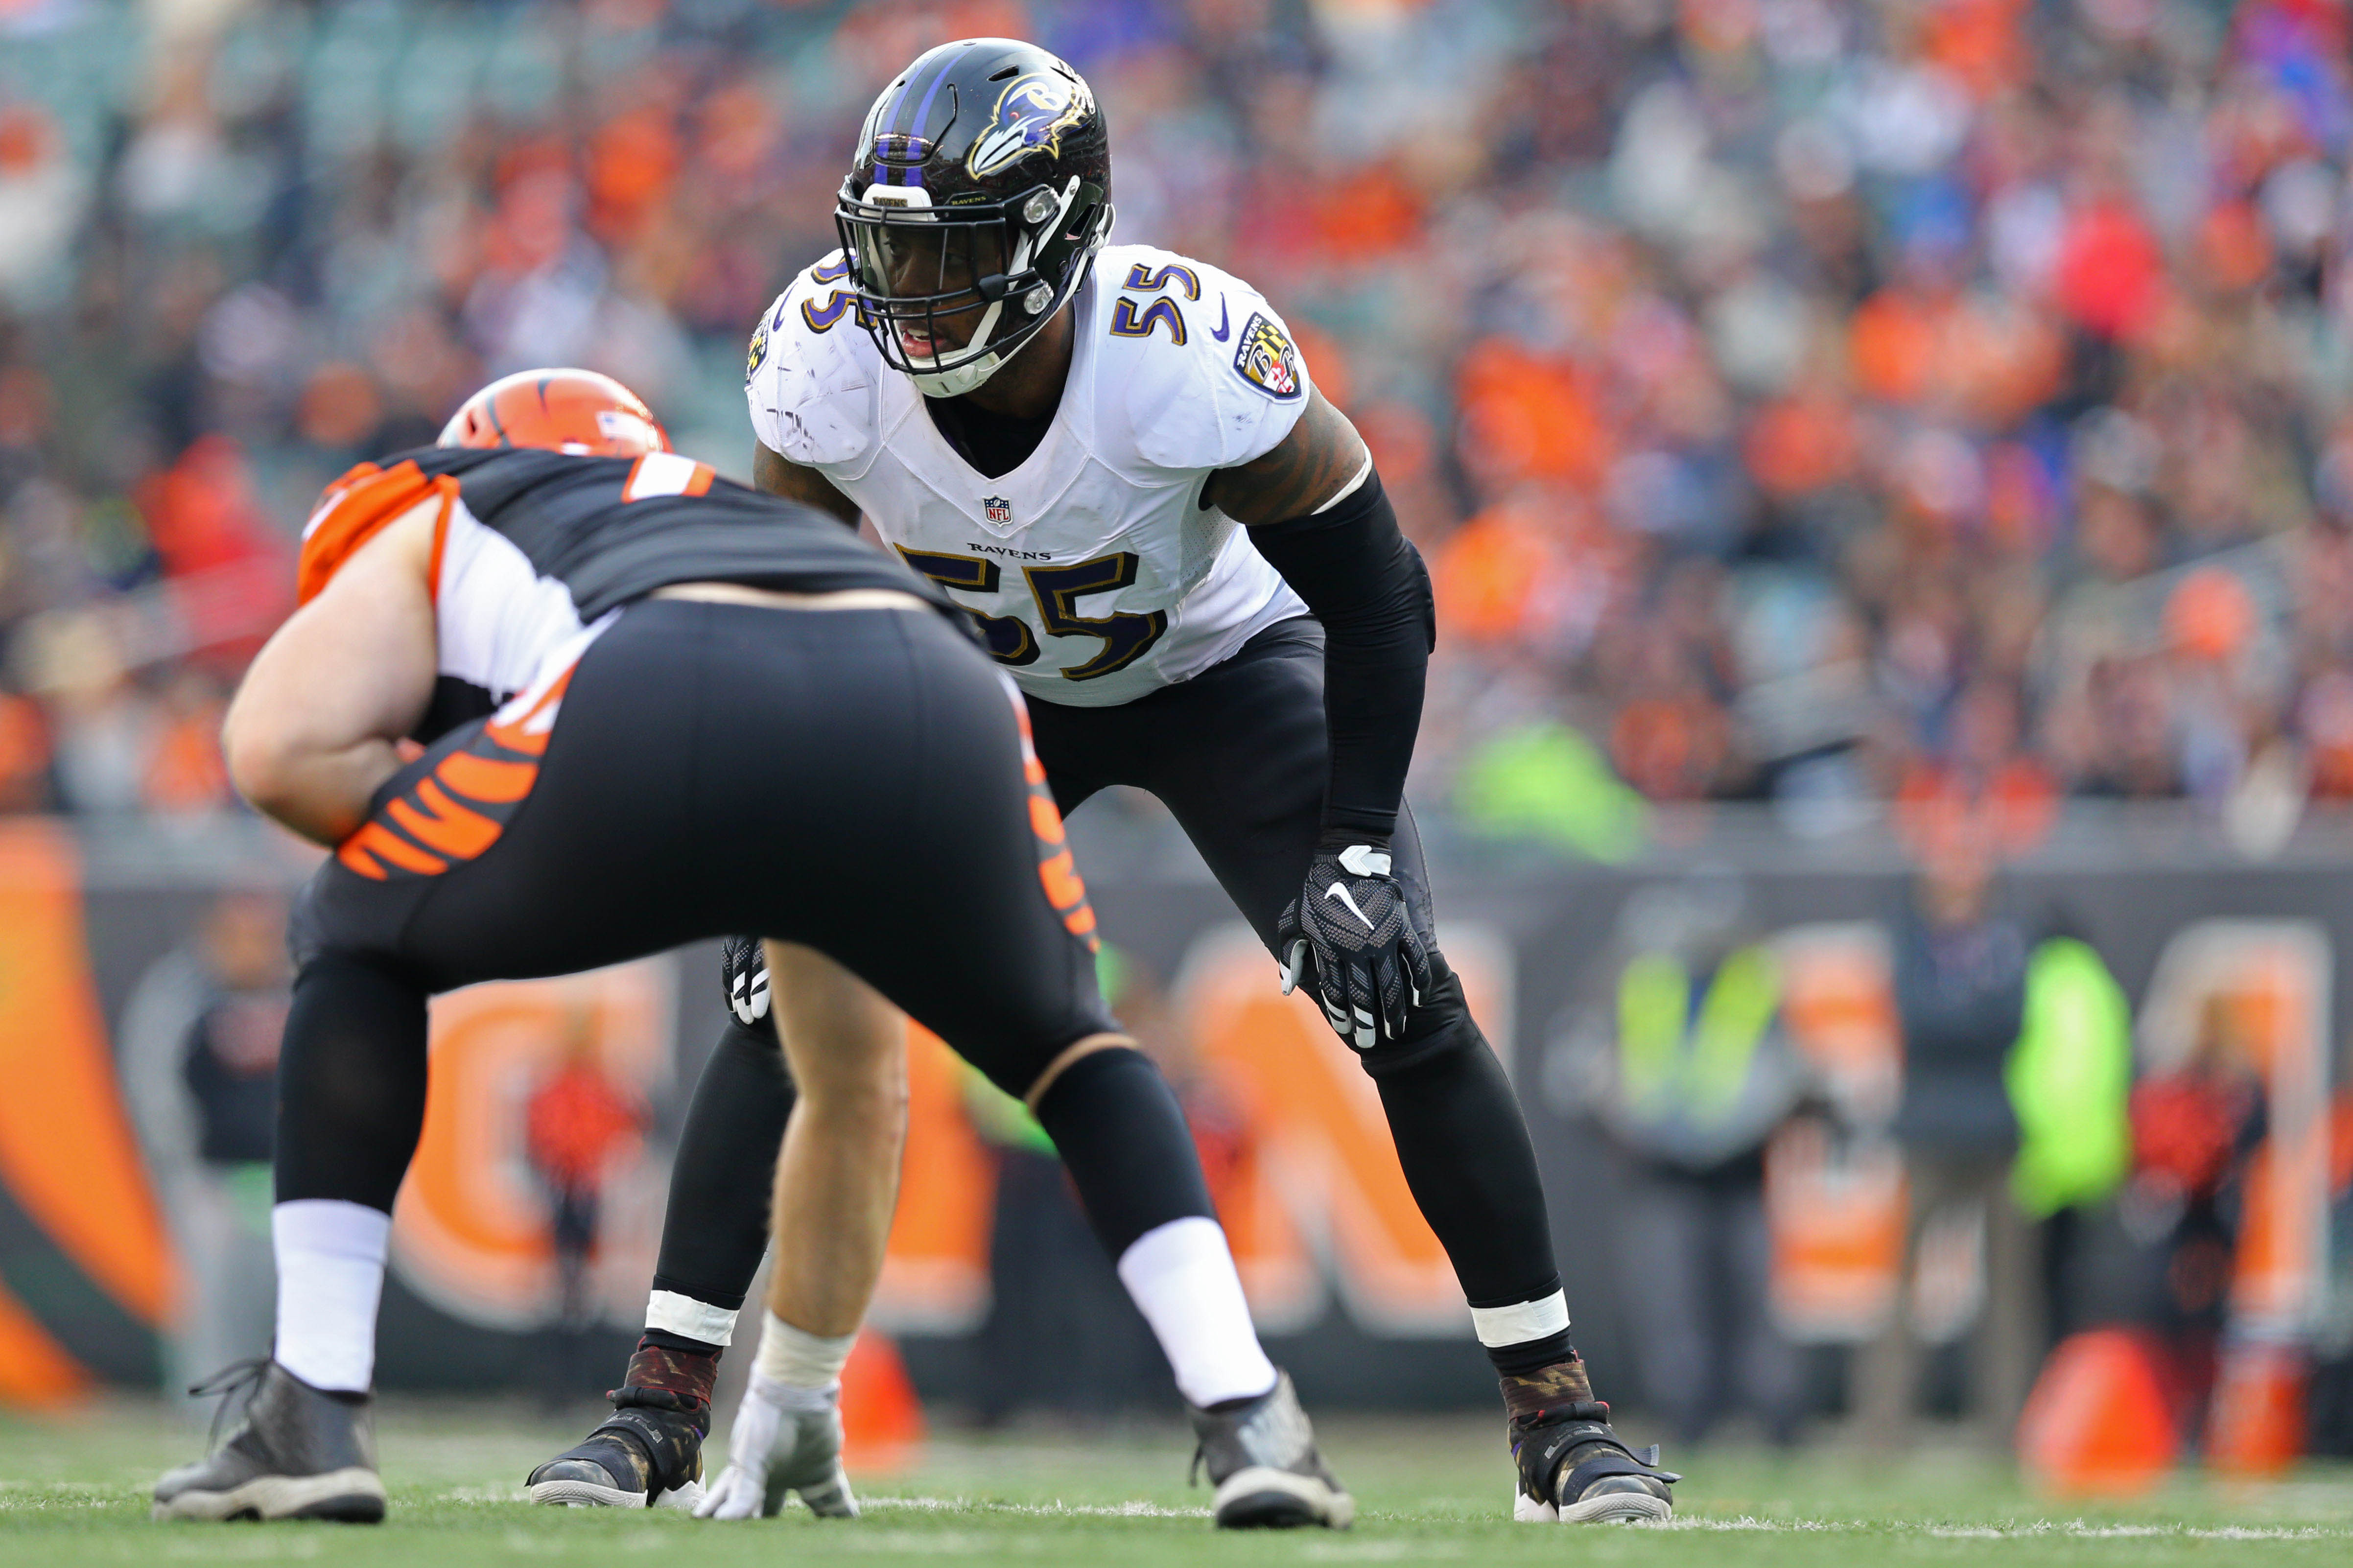 9792026-nfl-baltimore-ravens-at-cincinnati-bengals